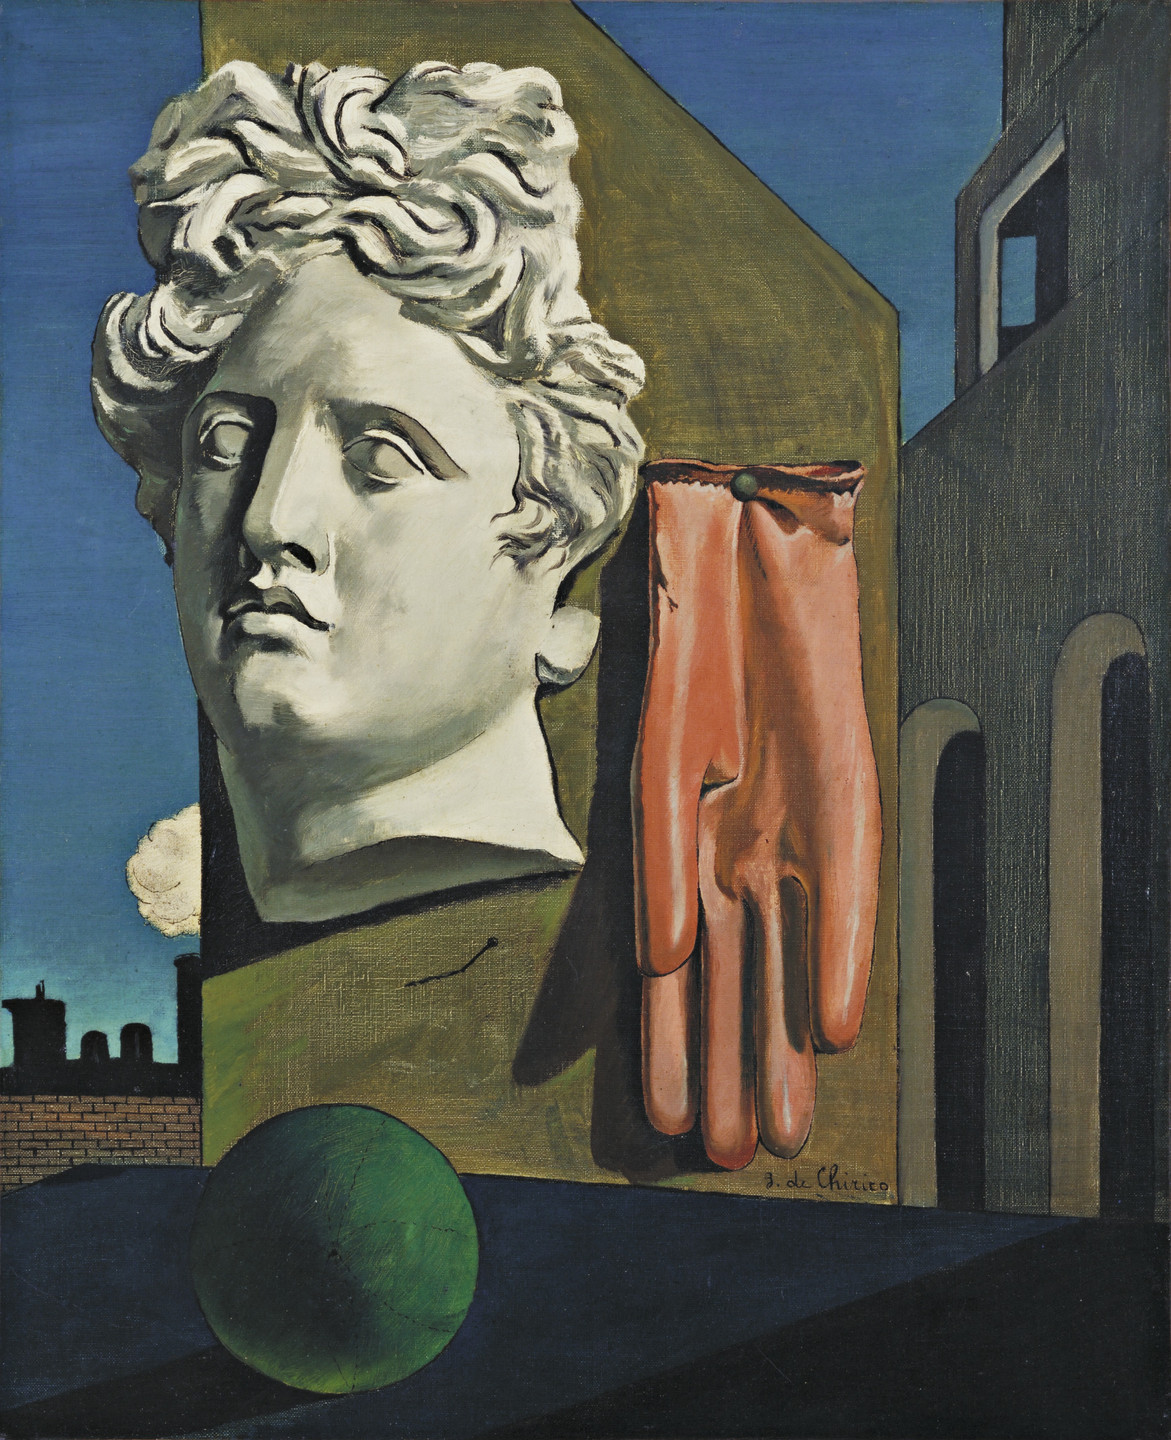 Giorgio de Chirico. The Song of Love. Paris, June-July 1914